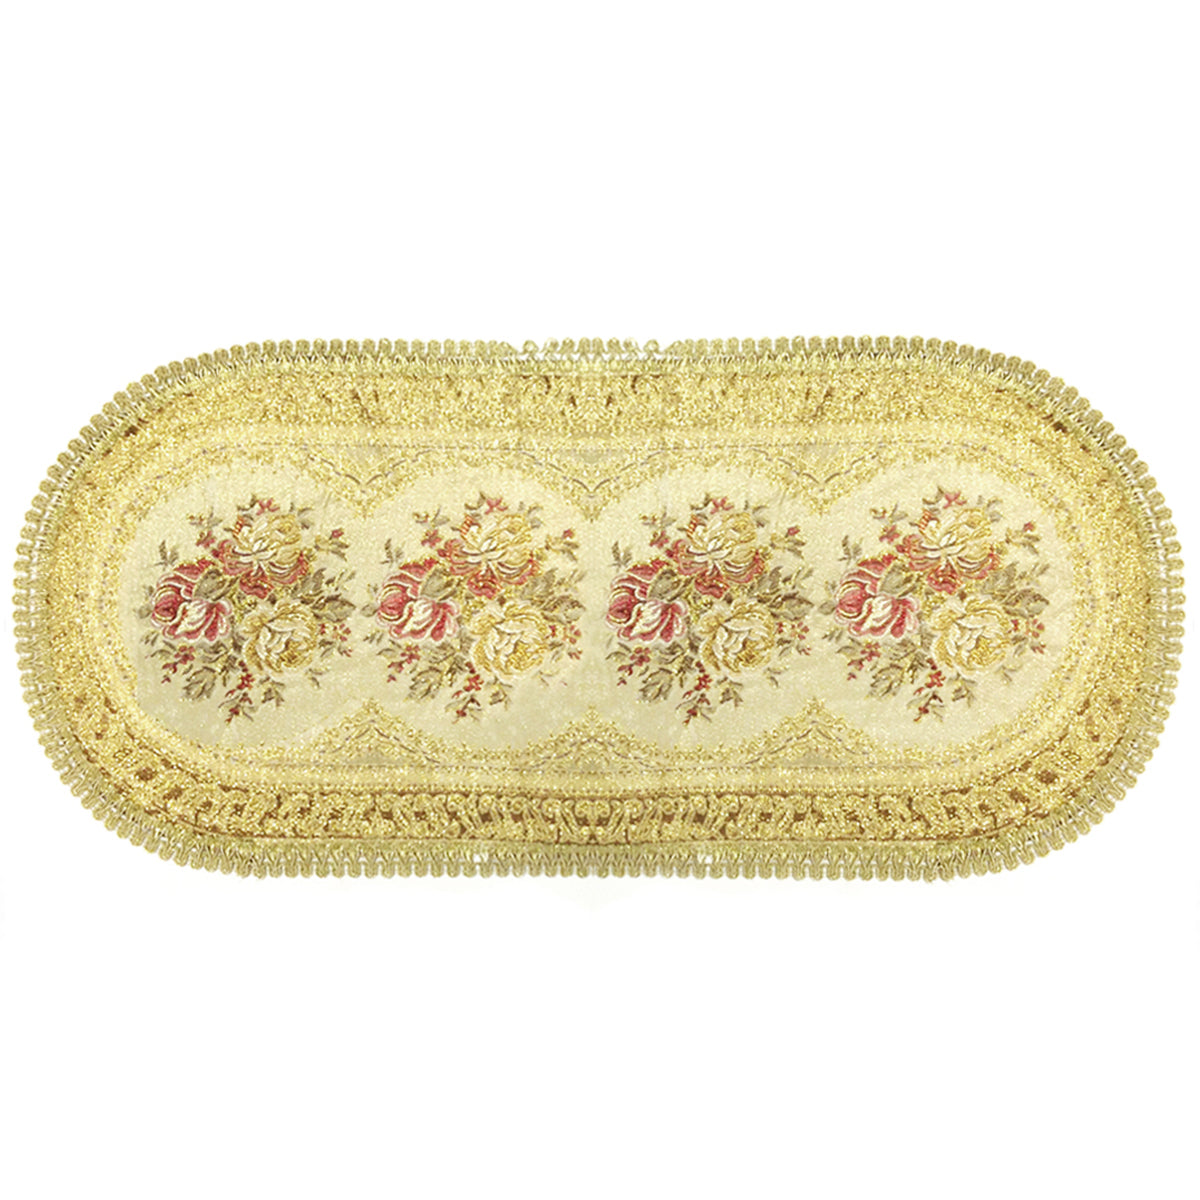 Wrapables 28.5 x 13 Inch Vintage Floral Table Runner with Gold Embroidery, Imperial Gold